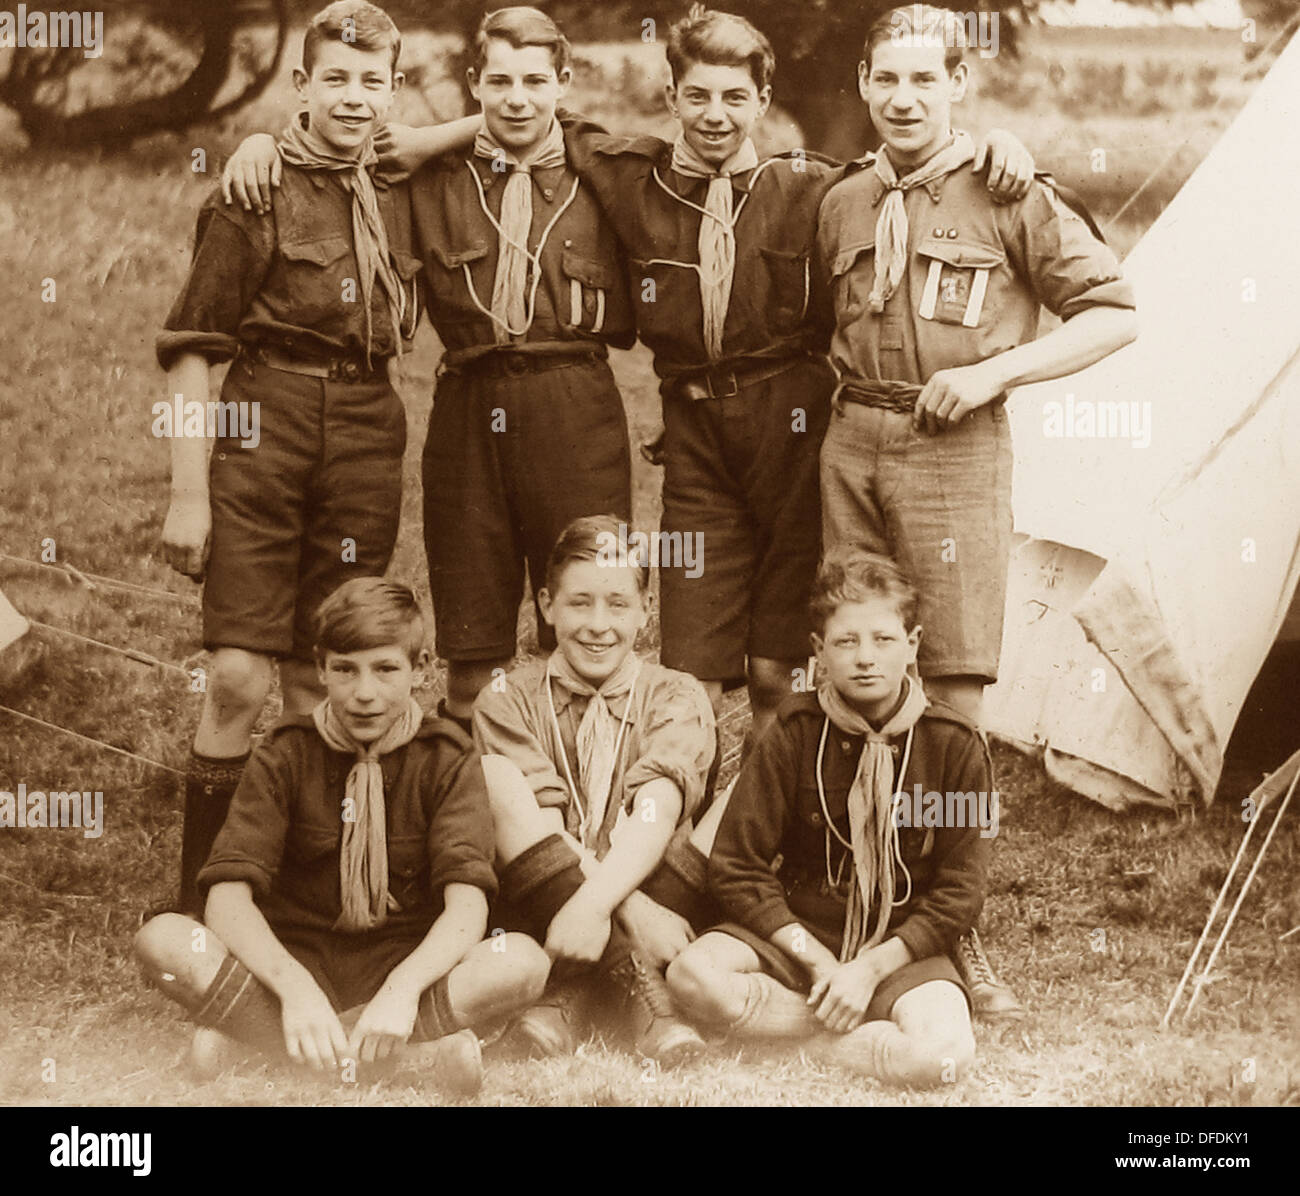 Boy Scouts at camp probably 1920s - Stock Image